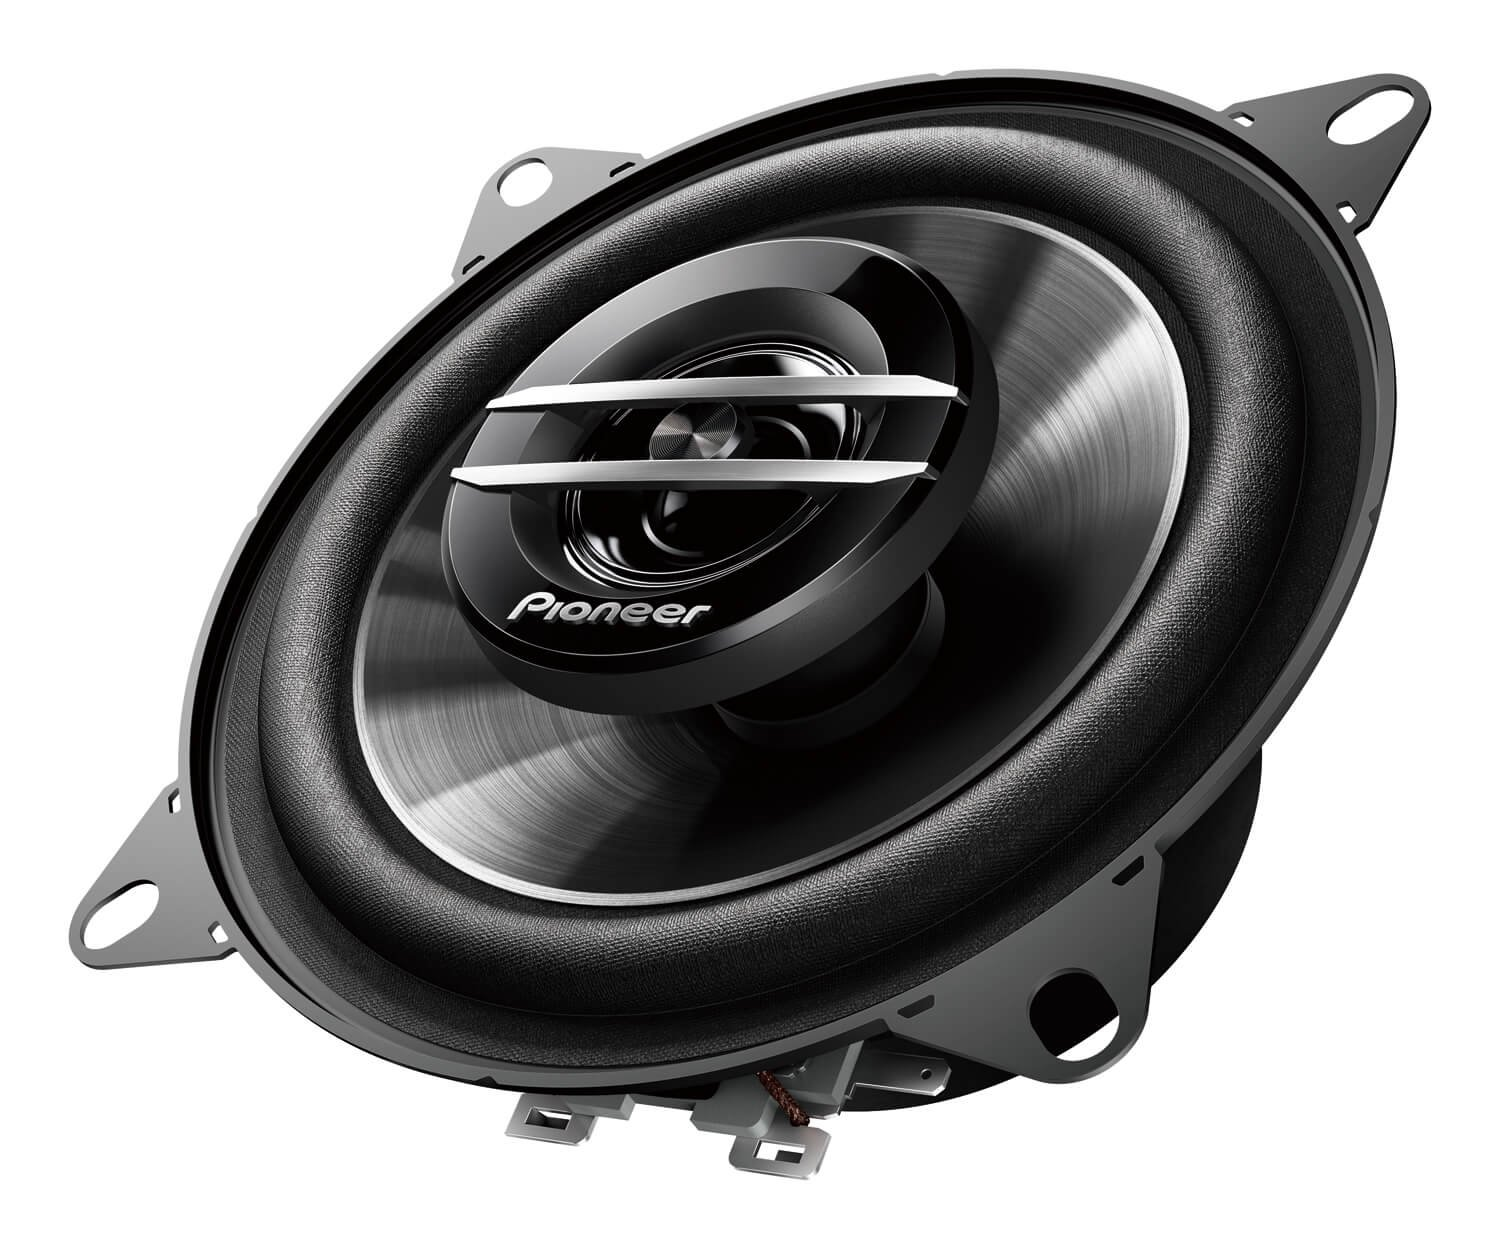 Pioneer TS-G1020F 4 Car Audio Dual Cone Coaxial Speakers MEGA INT/'L TRADING GROUP INC.